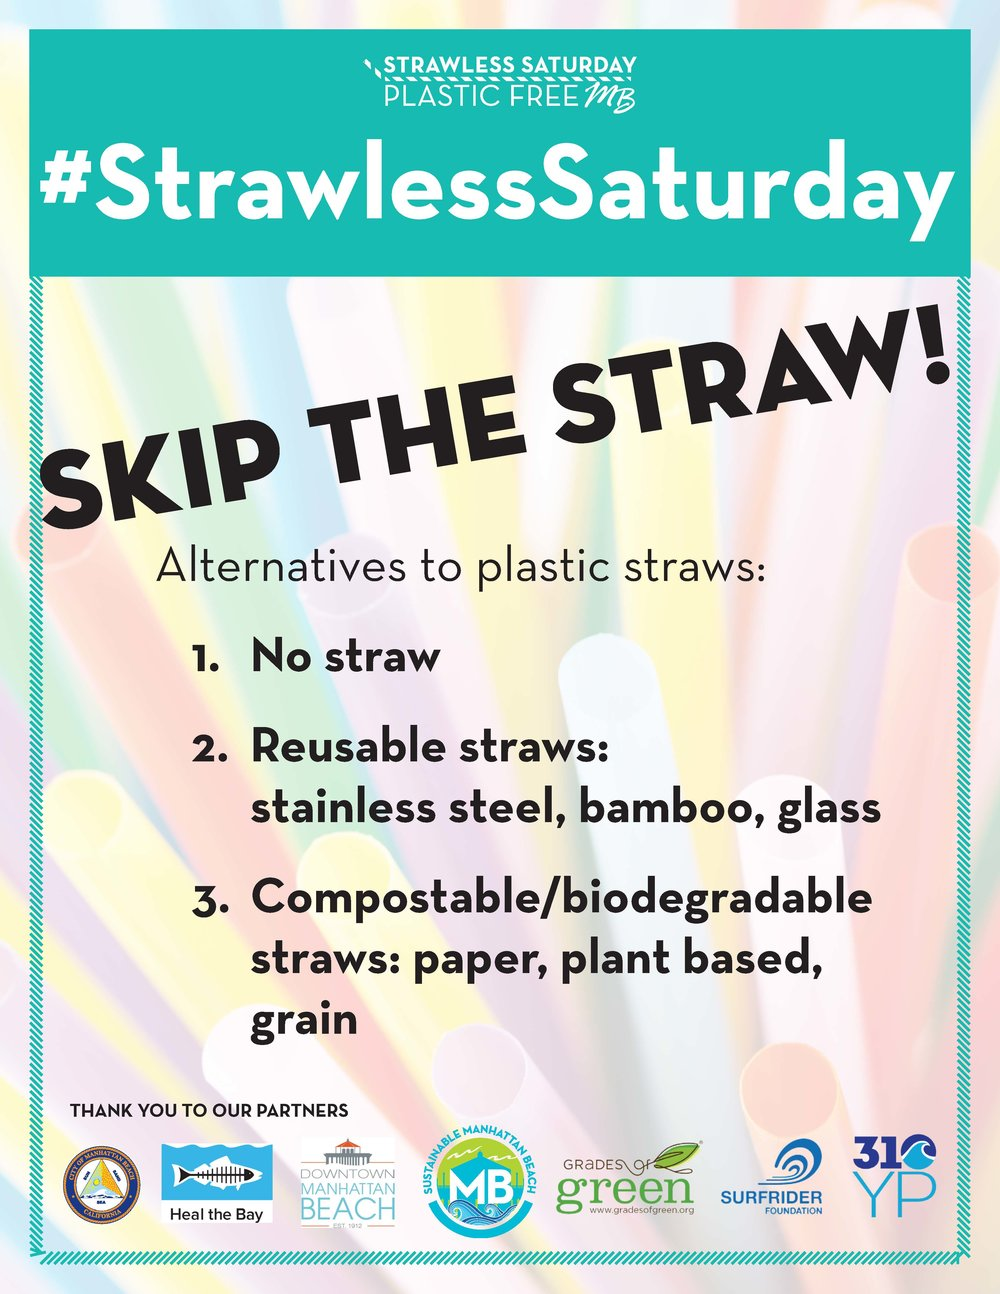 #StrawlessSaturday Skip the straw on Saturdays in Downtown Manhattan Beach! Alternatives to plastic straws:   1. No straw   2. Reusable straws:stainless steel, bamboo, glass   3. Compostable/biodegradable straws: paper, plant based, grain. -